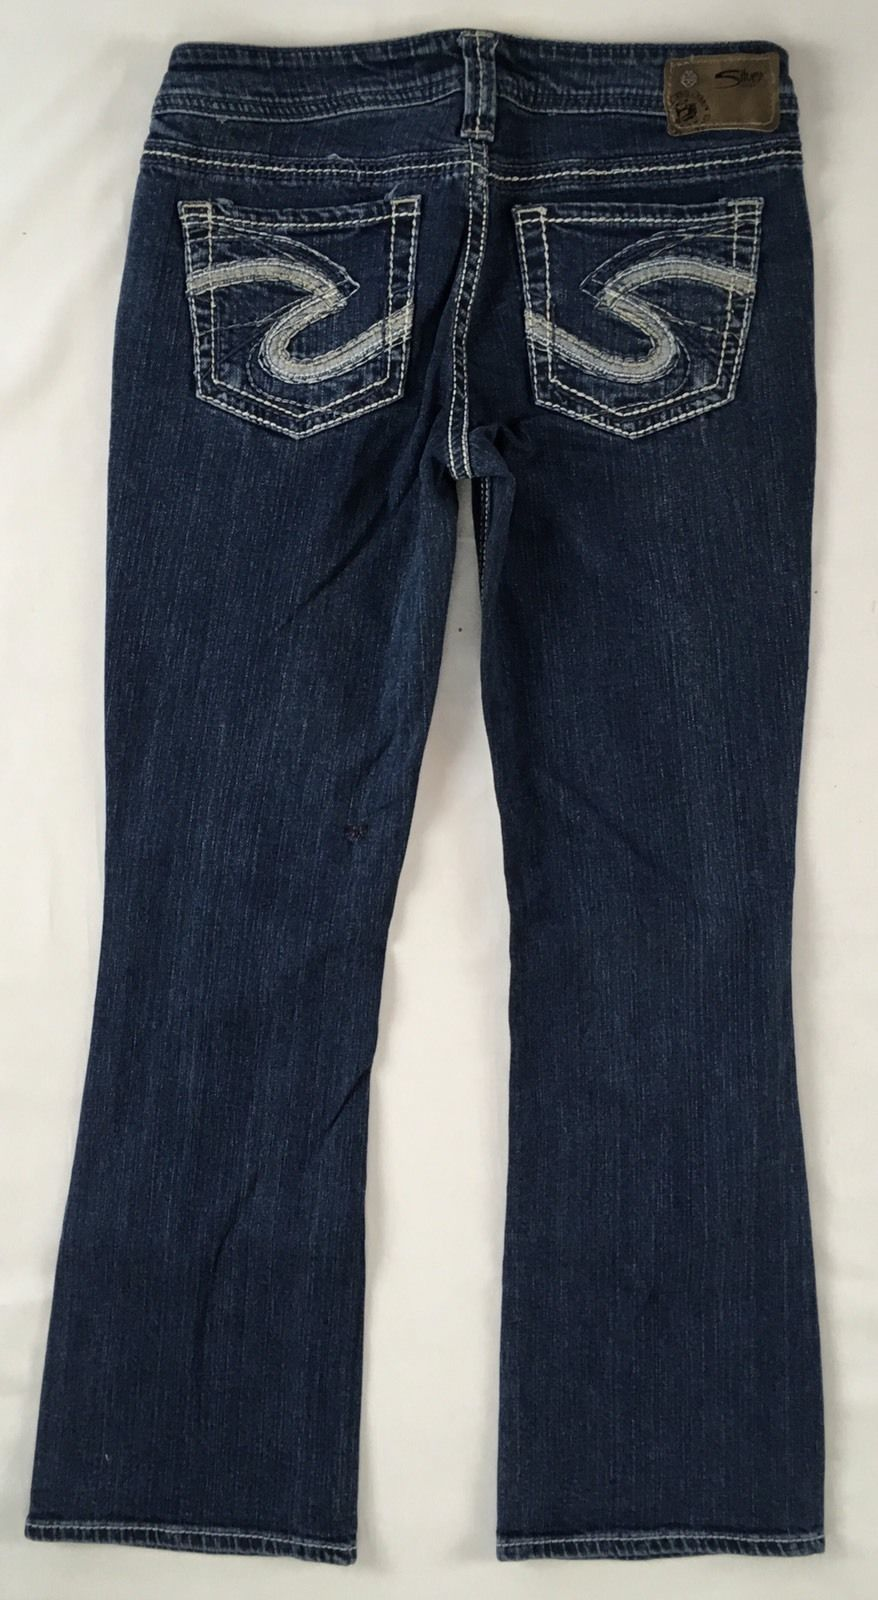 New SILVER Jeans Sale Buckle Mid Rise Aiko Bootcut Stretch Jean 27 X 29